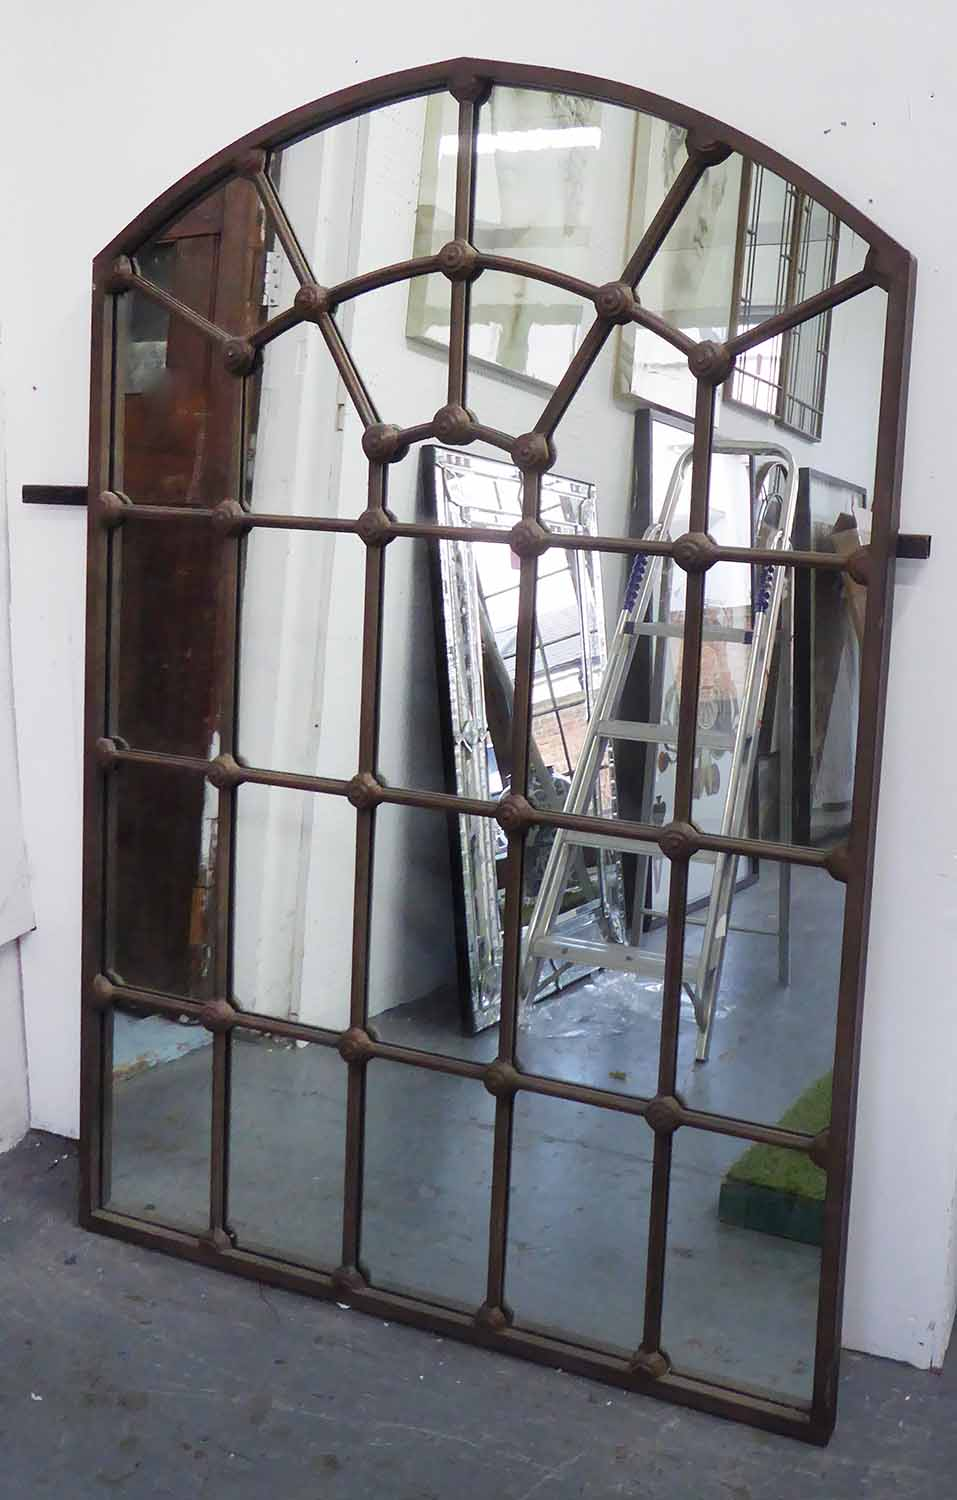 Lot 45 - WINDOW MIRROR, Georgian style, rustic cast iron frame, 104cm x 155cm H.